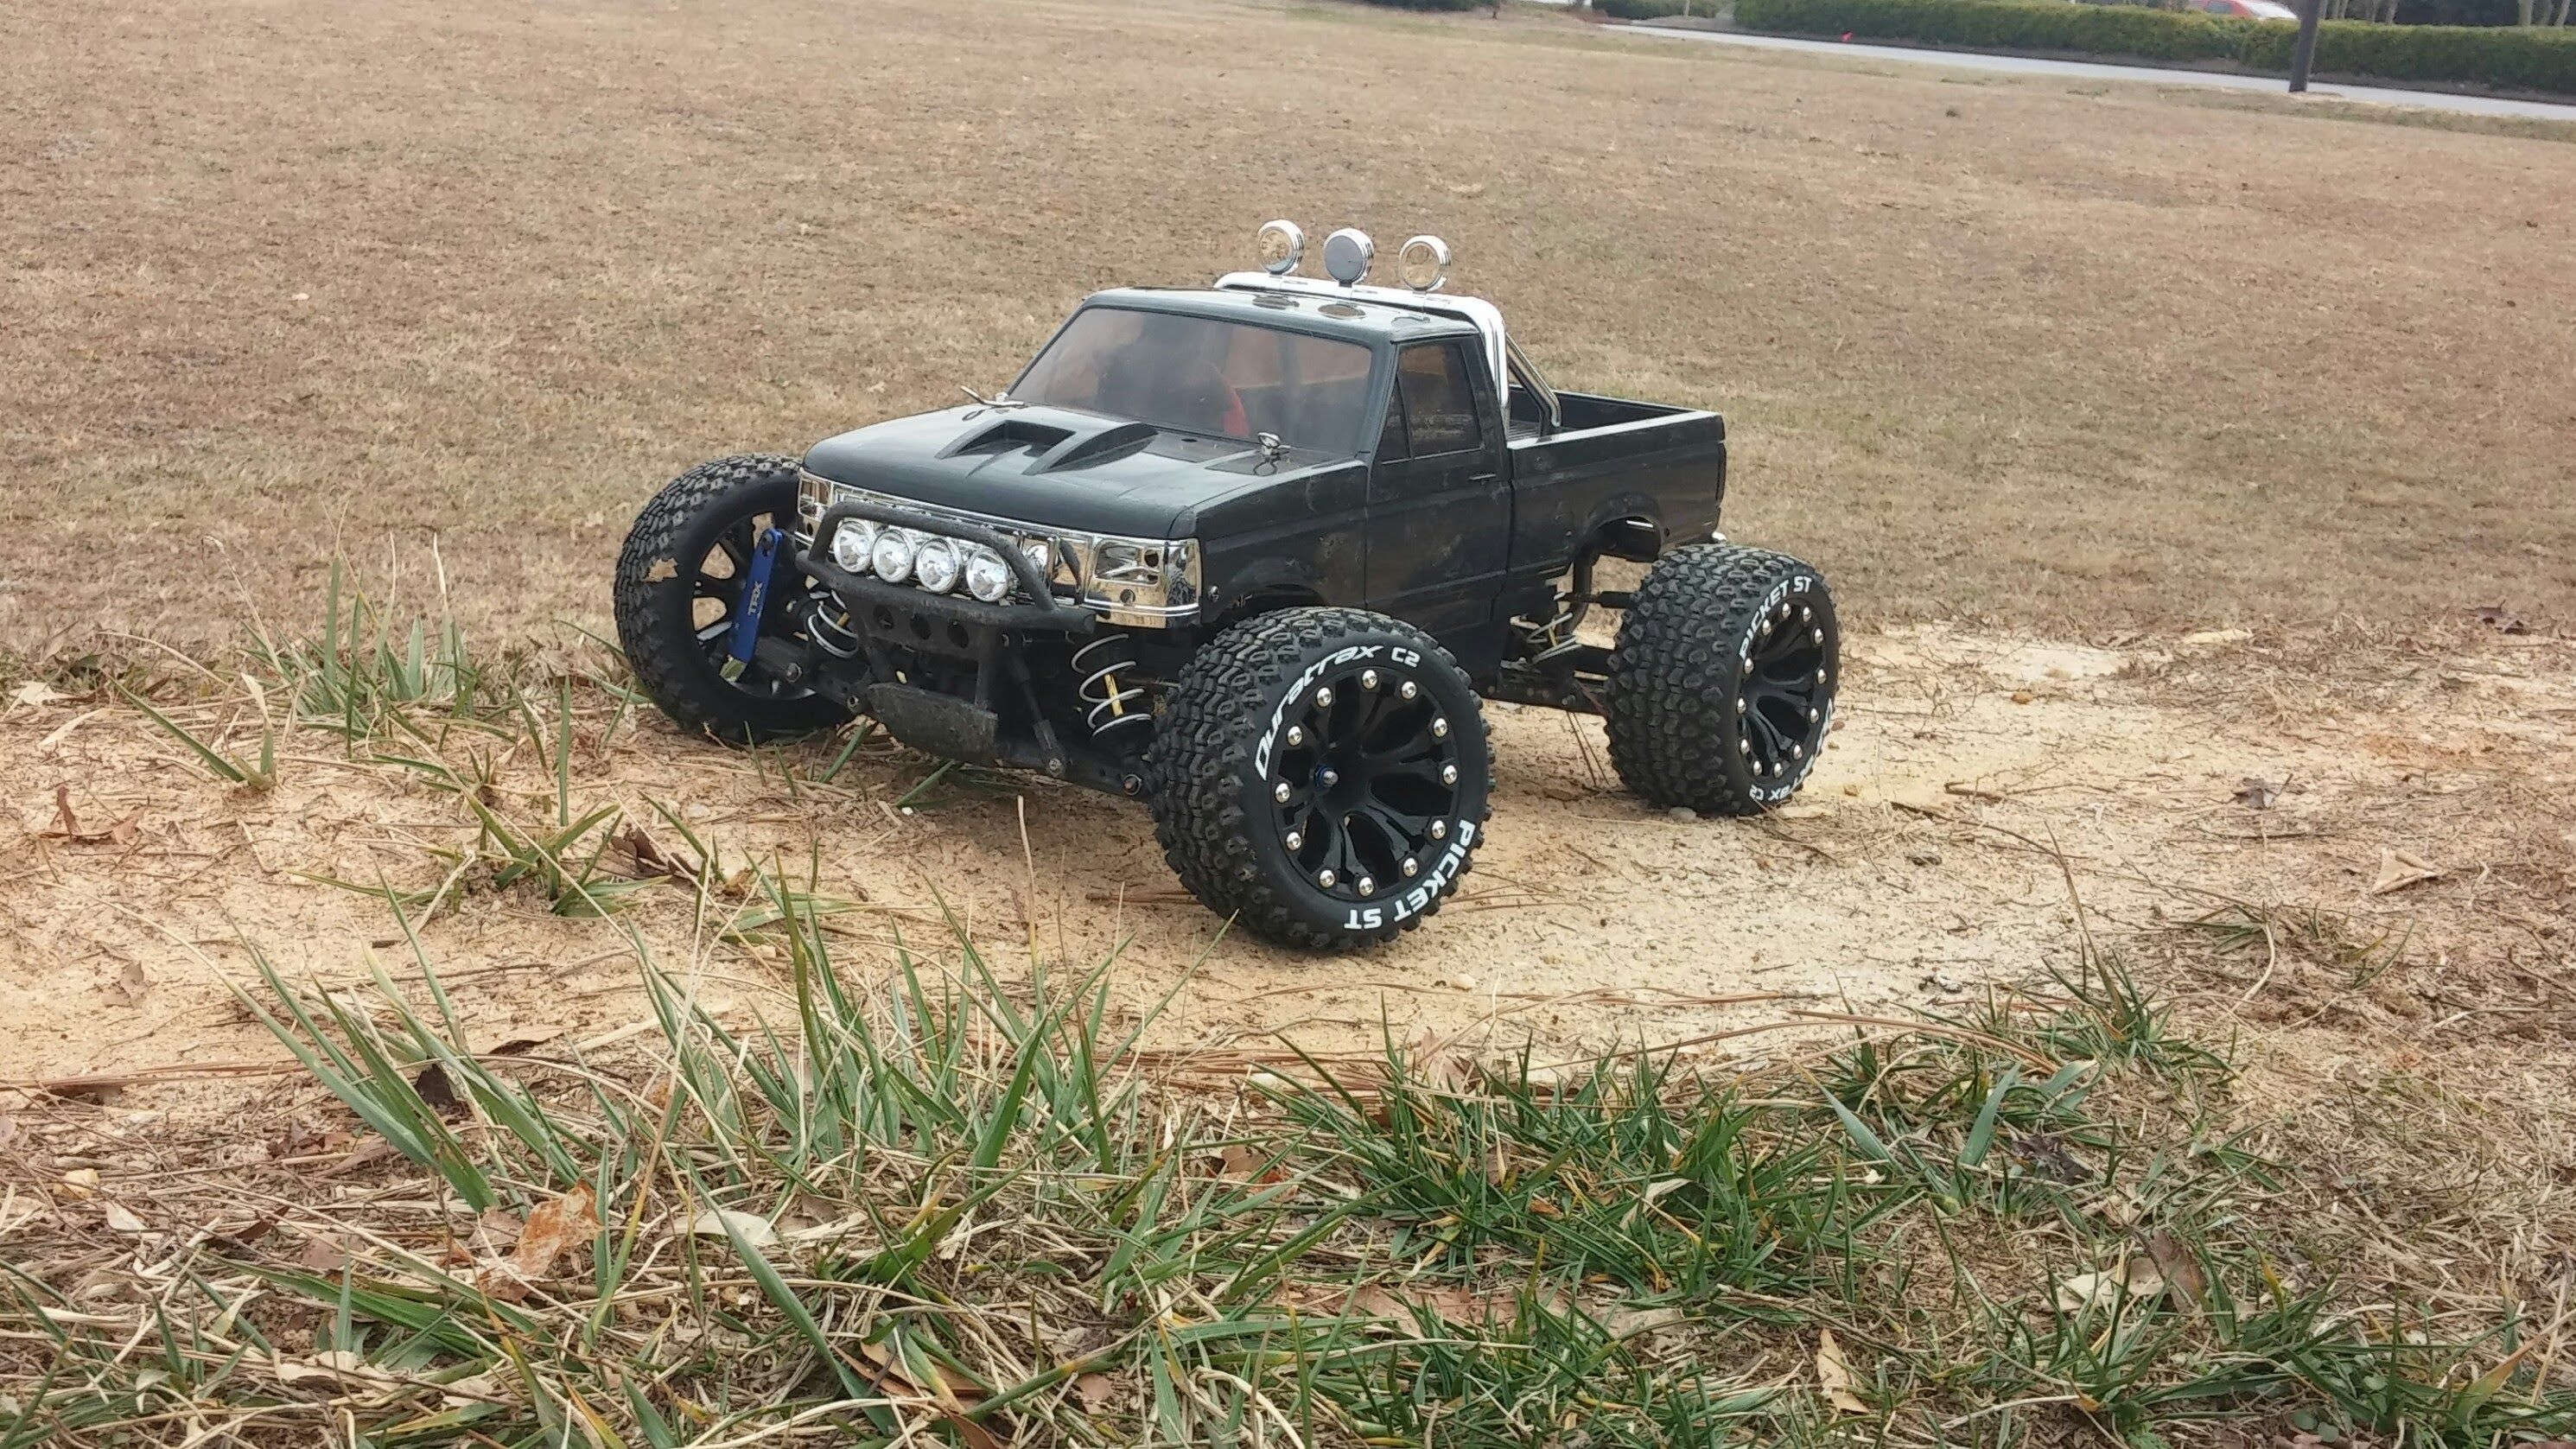 Traxxas stampede 4x4 vxl run with Blackfoot Xtreme Body and